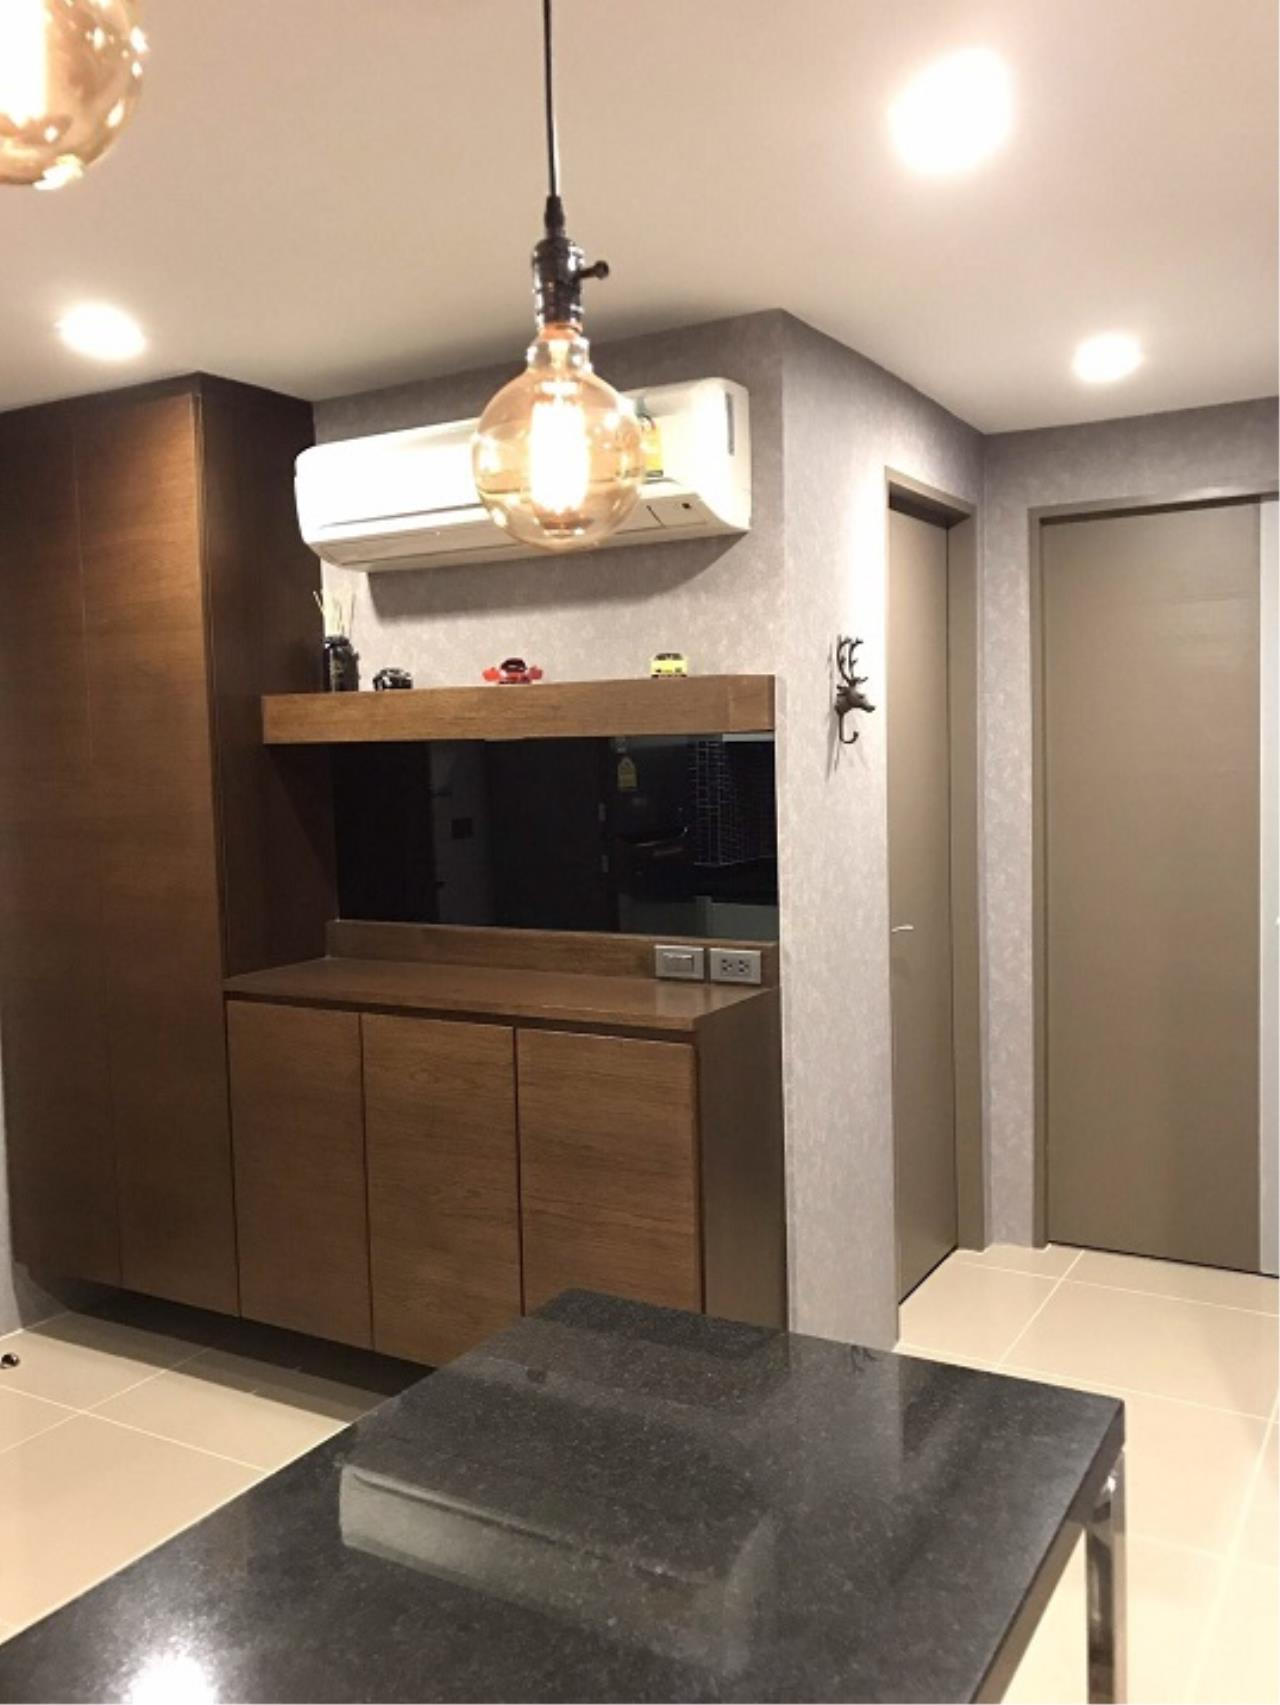 RE/MAX All Star Realty Agency's Mirage Sukhumvit one bed condo for sale/rent (BTS Asoke / MRT Sukhumvit) 3